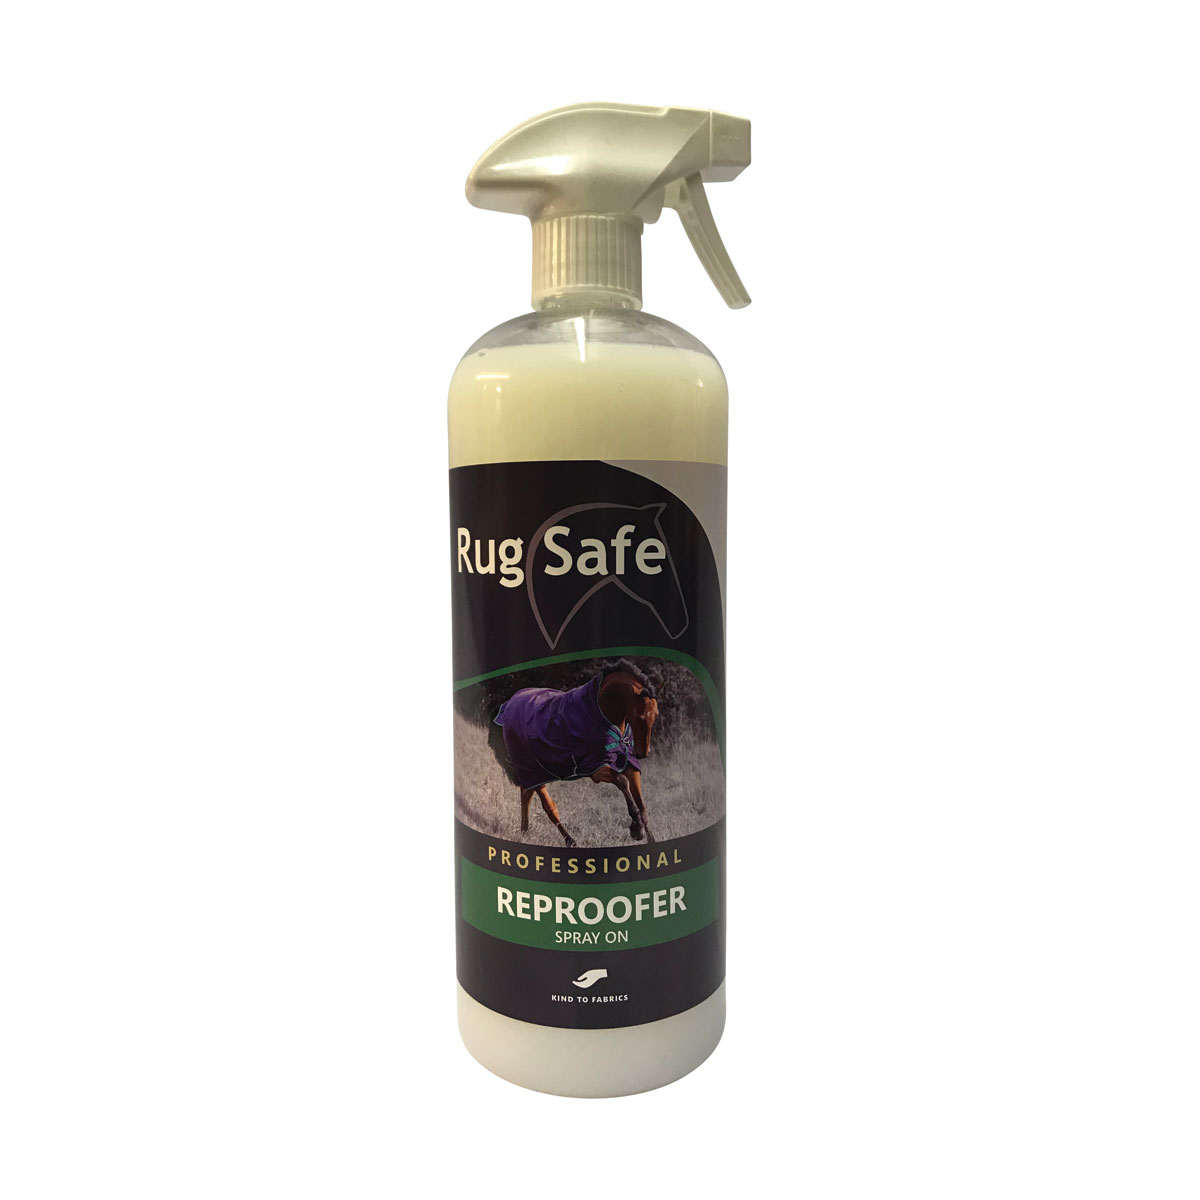 PR-25824-Rugsafe-Spray-on-Water-Repellent-01.jpg